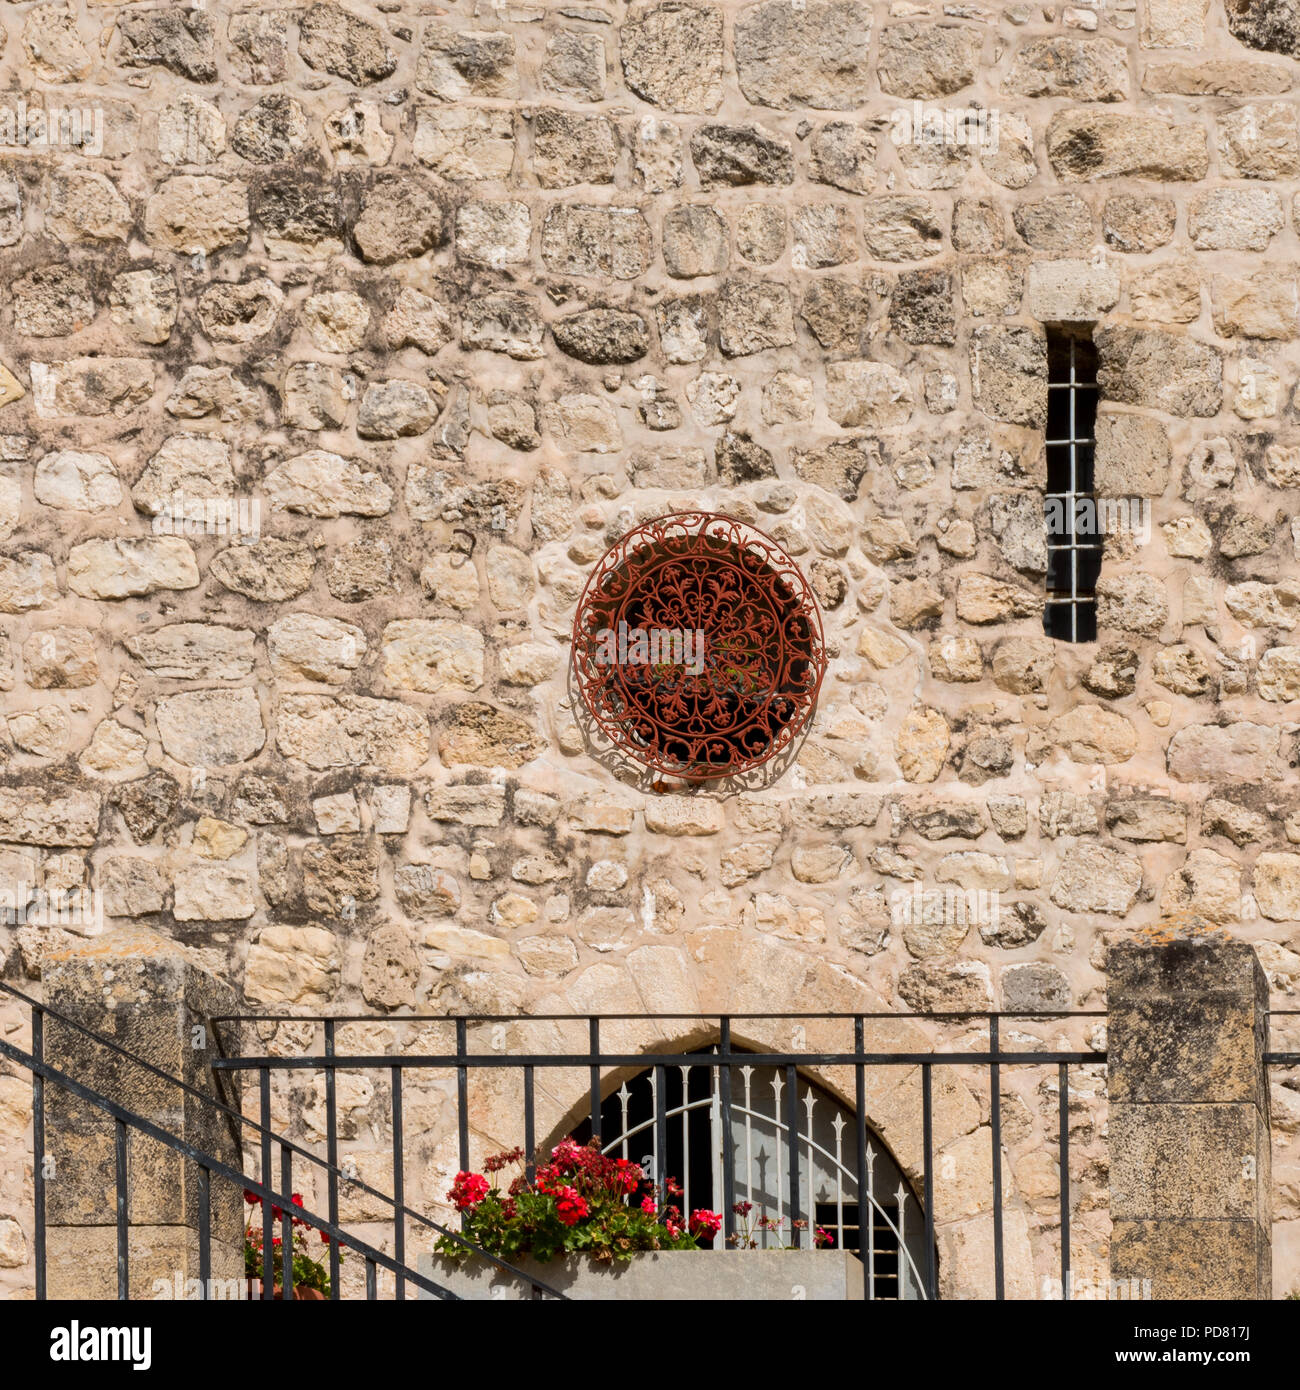 Ornate Round Red Metalwork Window In The Stone Wall Of John The